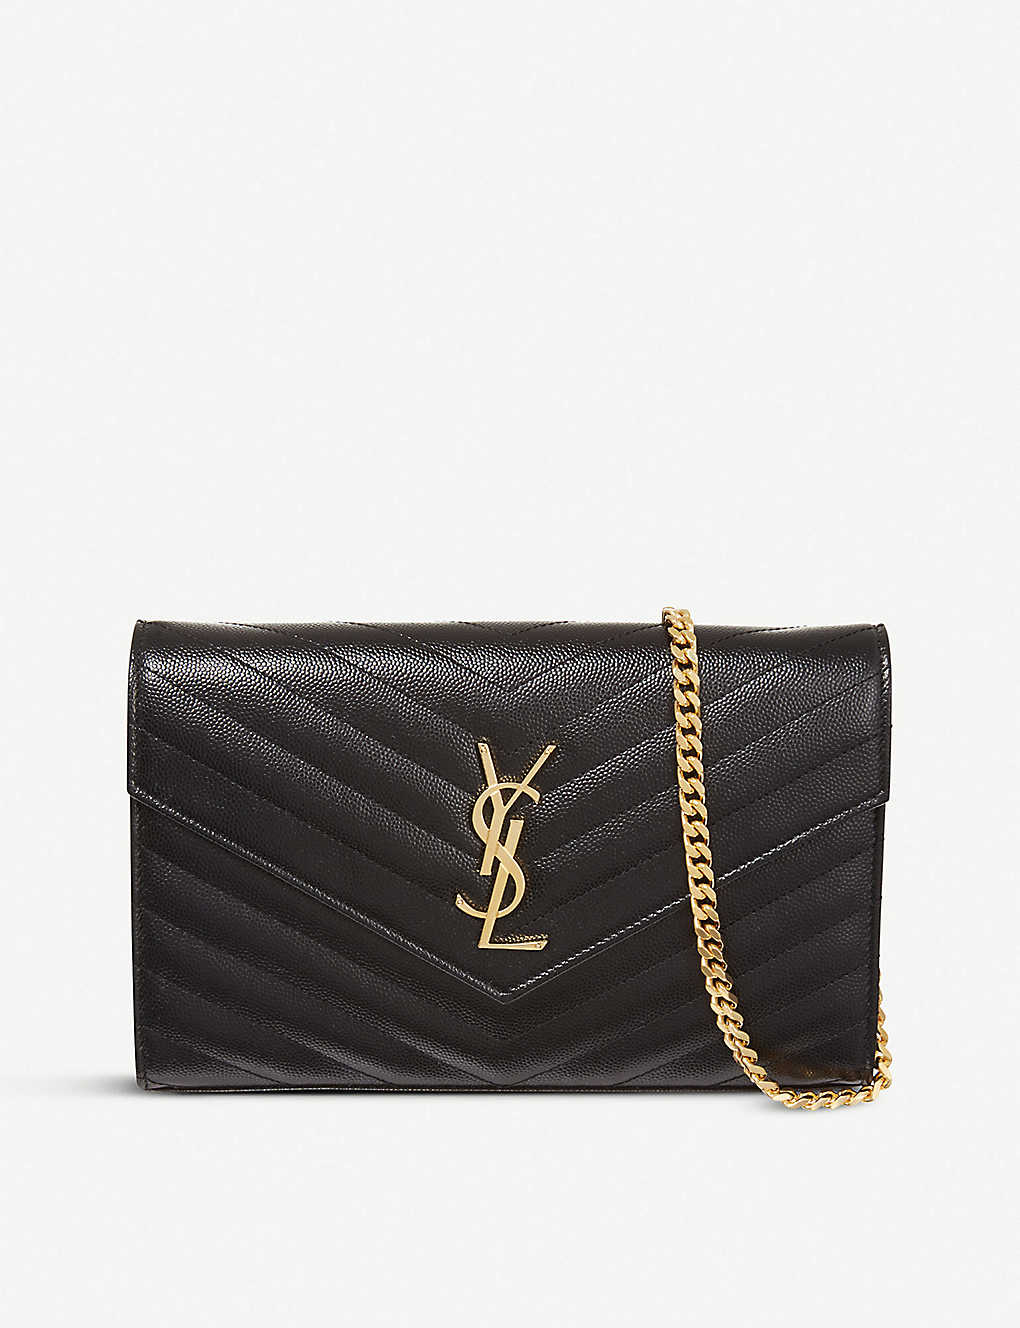 SAINT LAURENT: Monogram quilted-leather shoulder bag